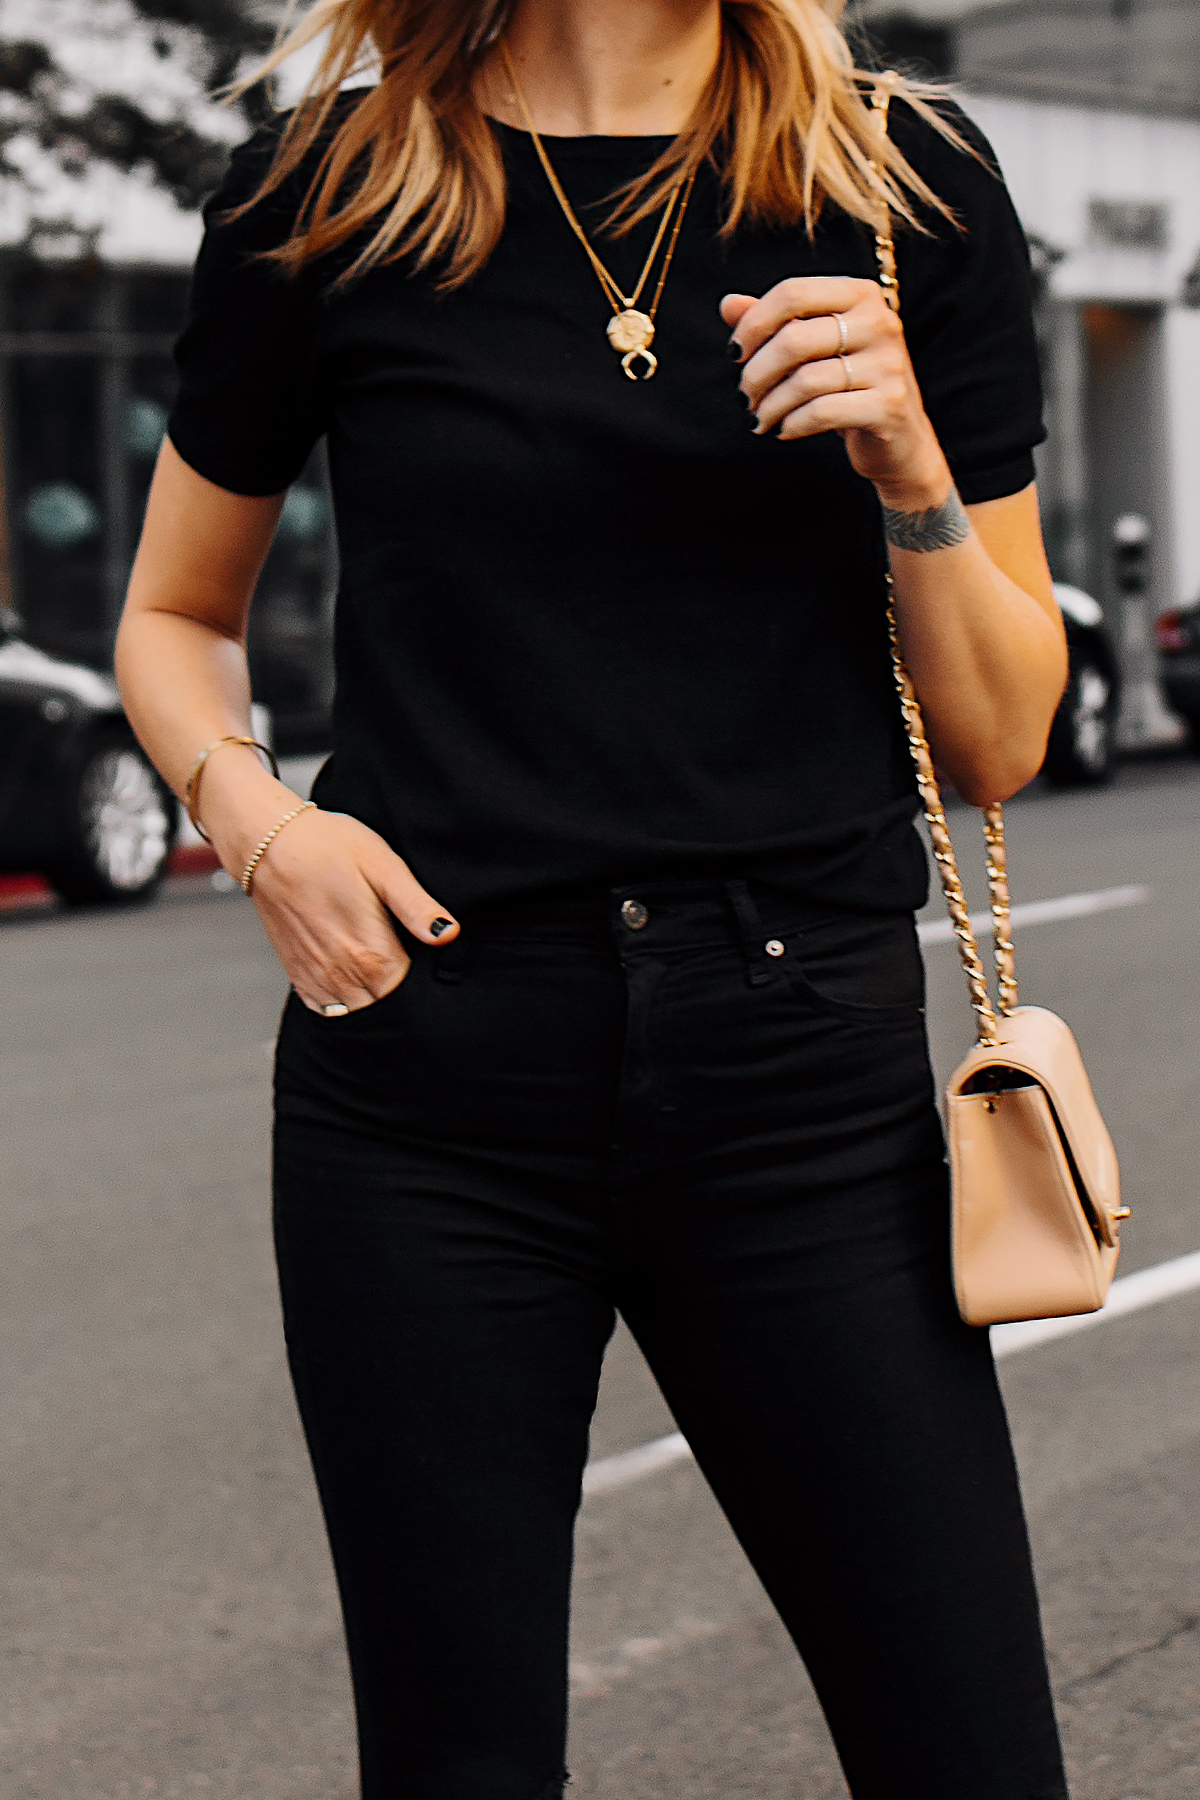 Woman Wearing Black Short Sleeve Top Black Ripped Skinny Jeans Gold Missoma Necklaces Fashion Jackson San Diego Fashion Blogger Street Style